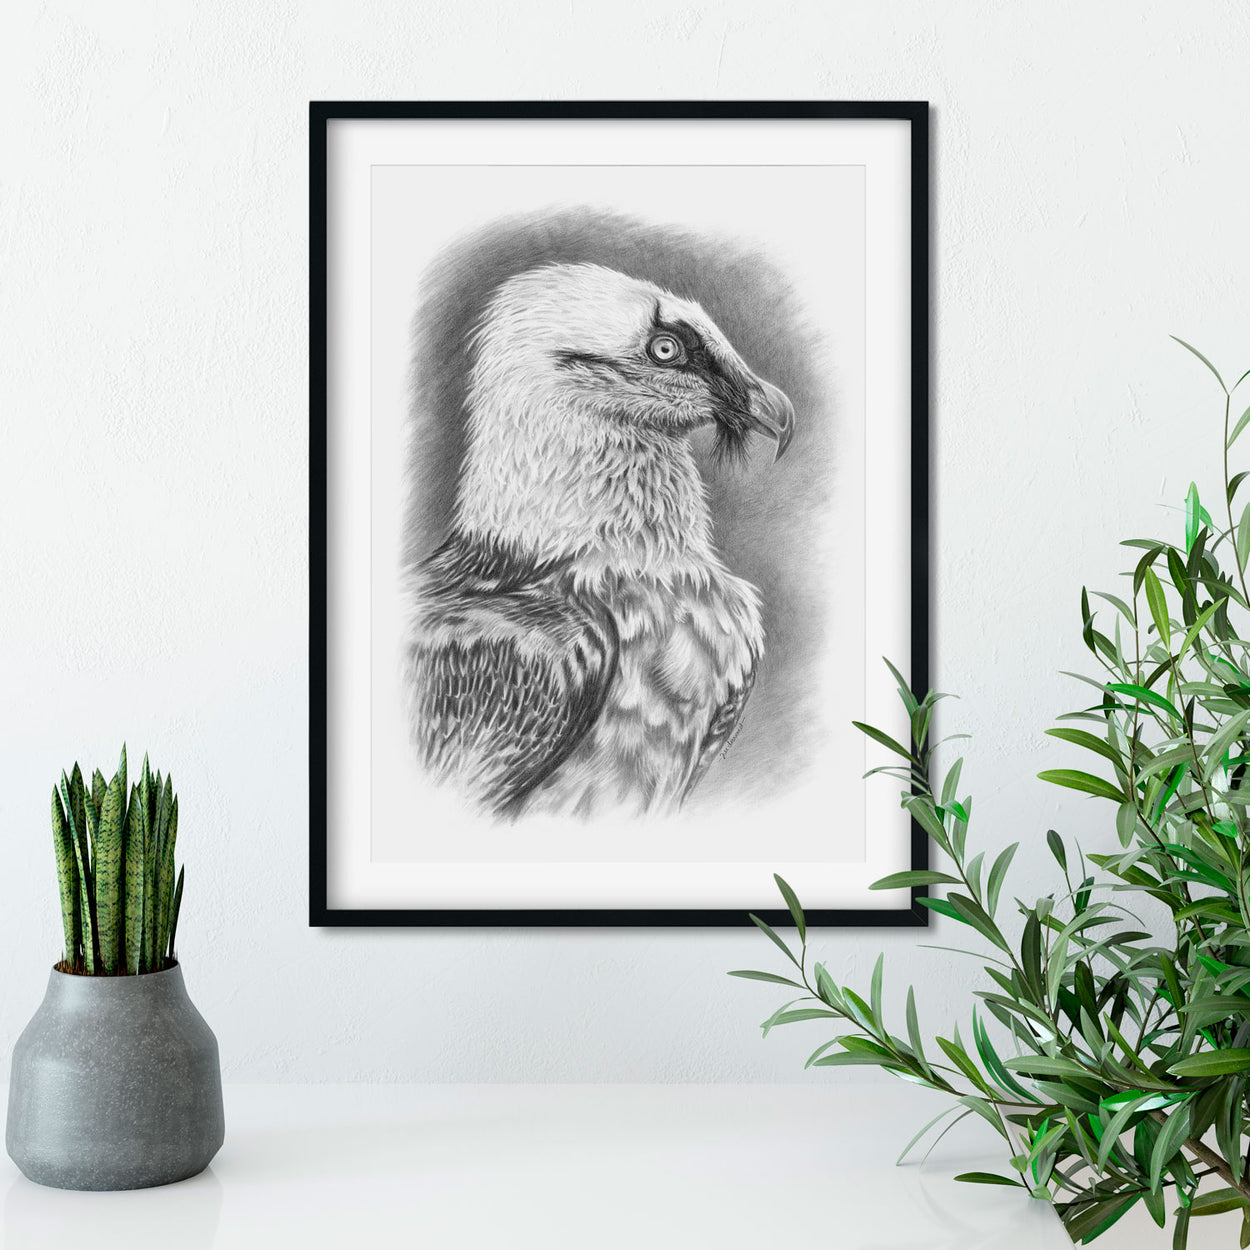 Original Bearded Vulture Lammergeier Drawing on Wall - The Thriving Wild